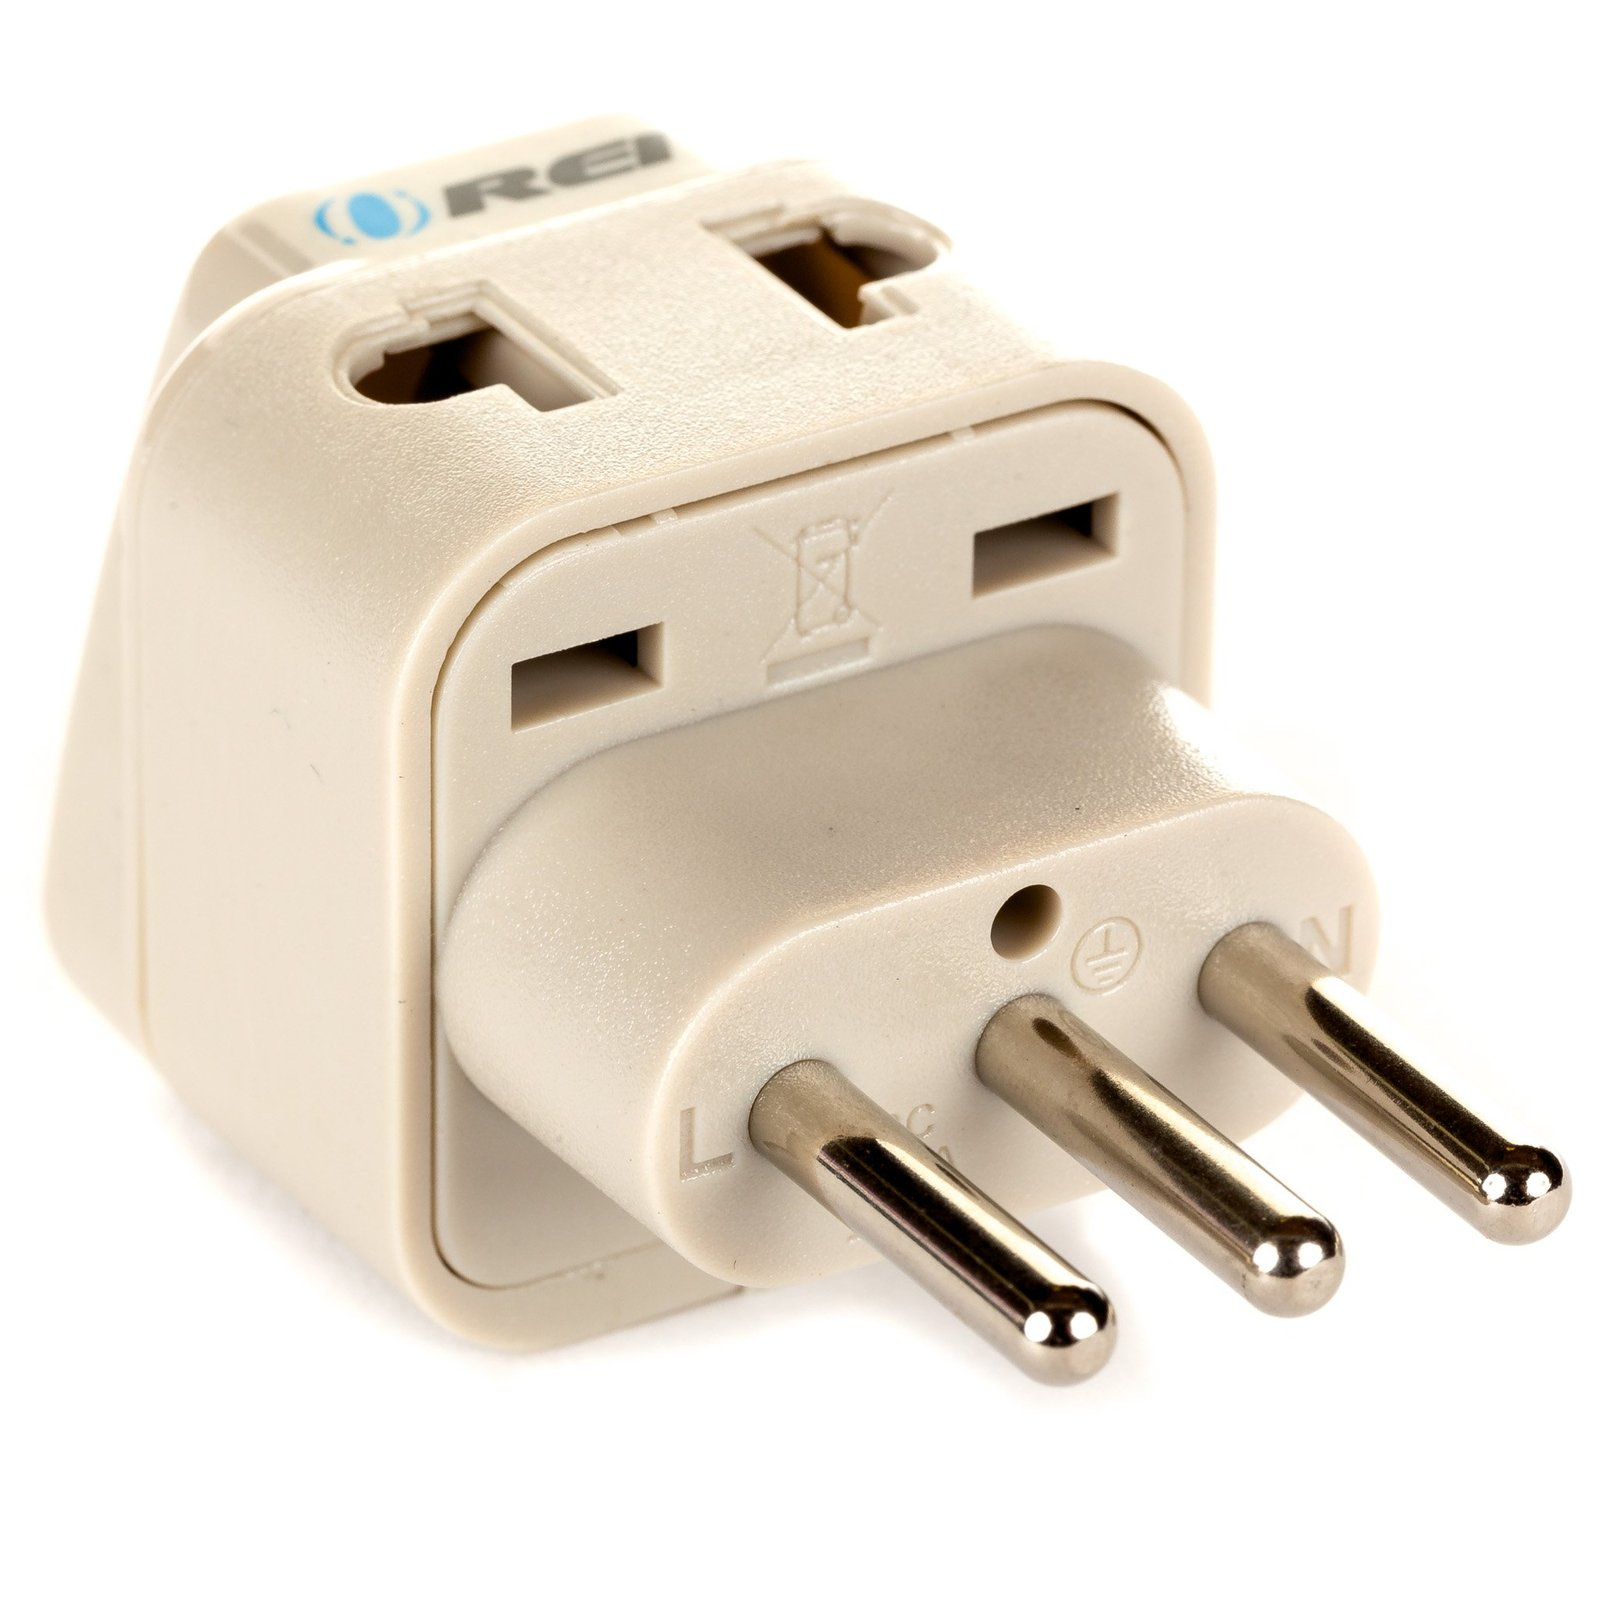 OREI Grounded Universal 2 in 1 Plug Adapter Type L for Italy, Uruguay & more ...